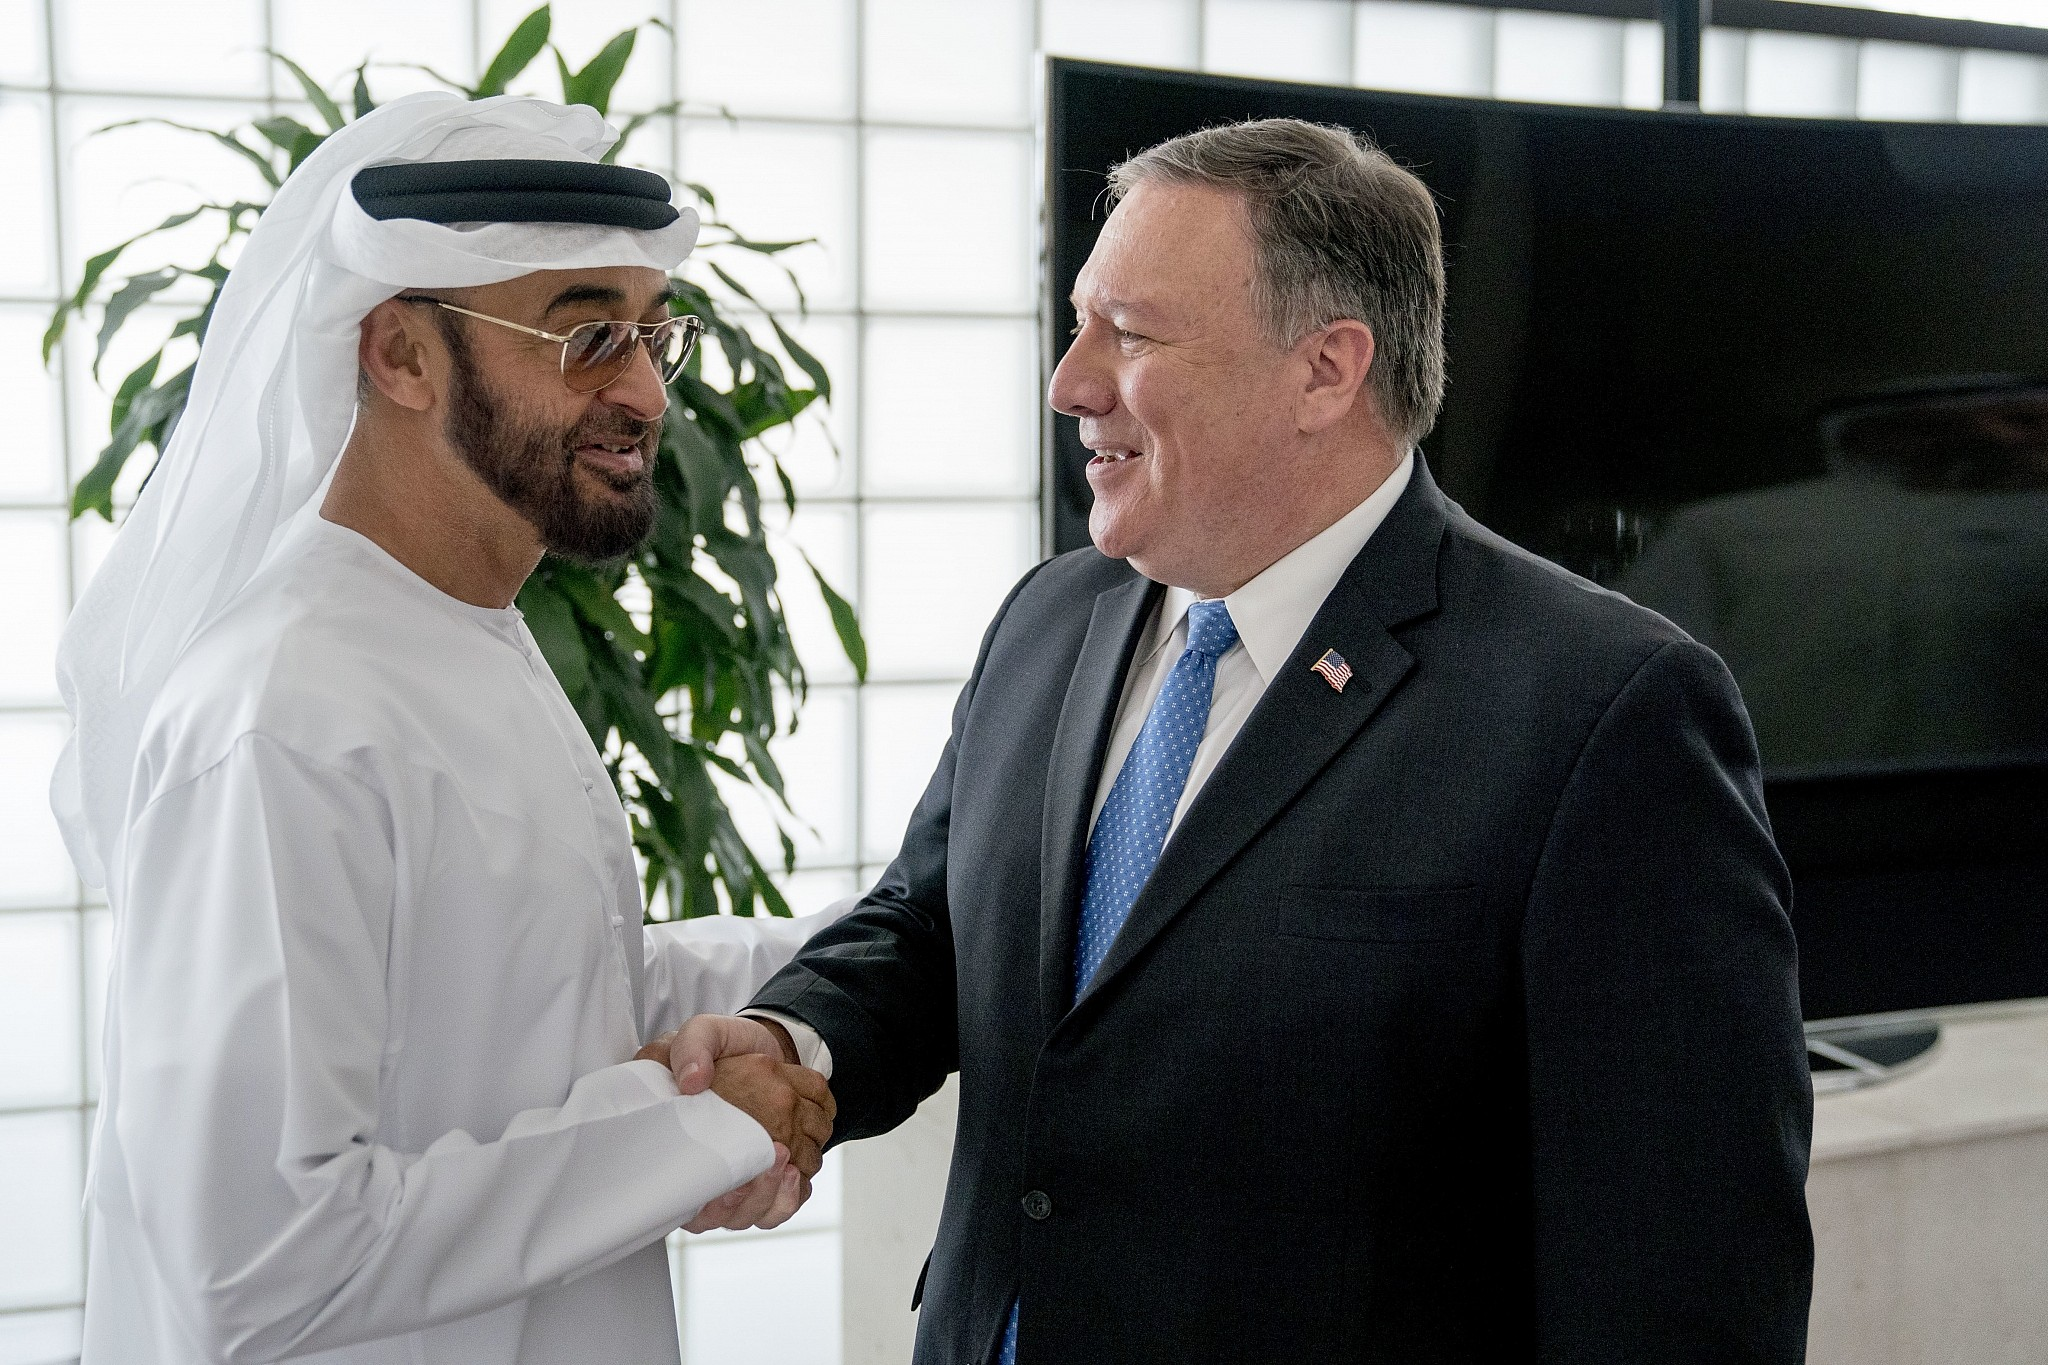 US Secretary of State Mike Pompeo right meets with Abu Dhabi's Crown Prince Sheikh Mohammed bin Zayed Al Nahyan left at the Al Shati Palace in Abu Dhabi‎ United Arab Emirates